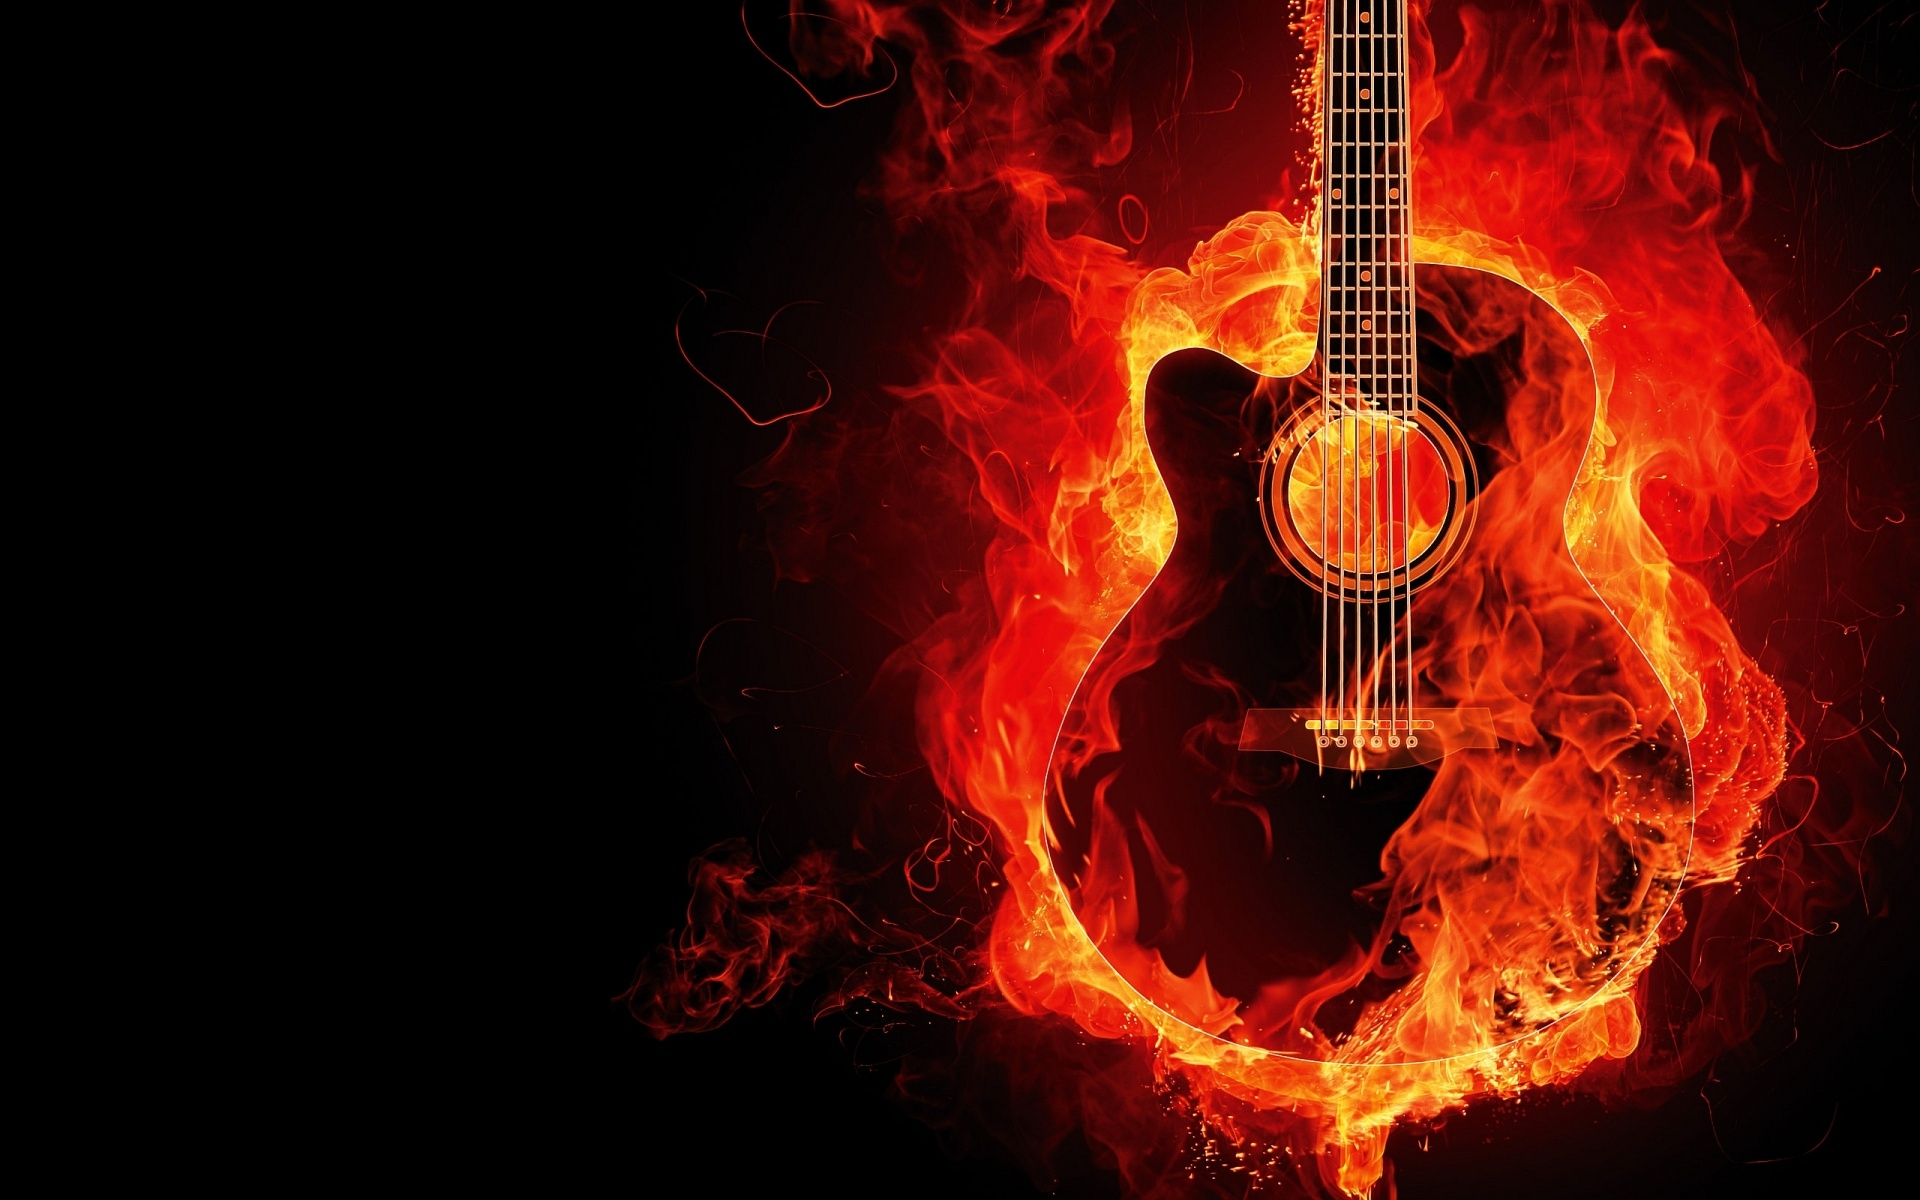 Free-cool-guitar-backgrounds-Download-Cool-Guitar-Backgrounds-afari-for-Free-cool-guit-wallpaper-wp3405823